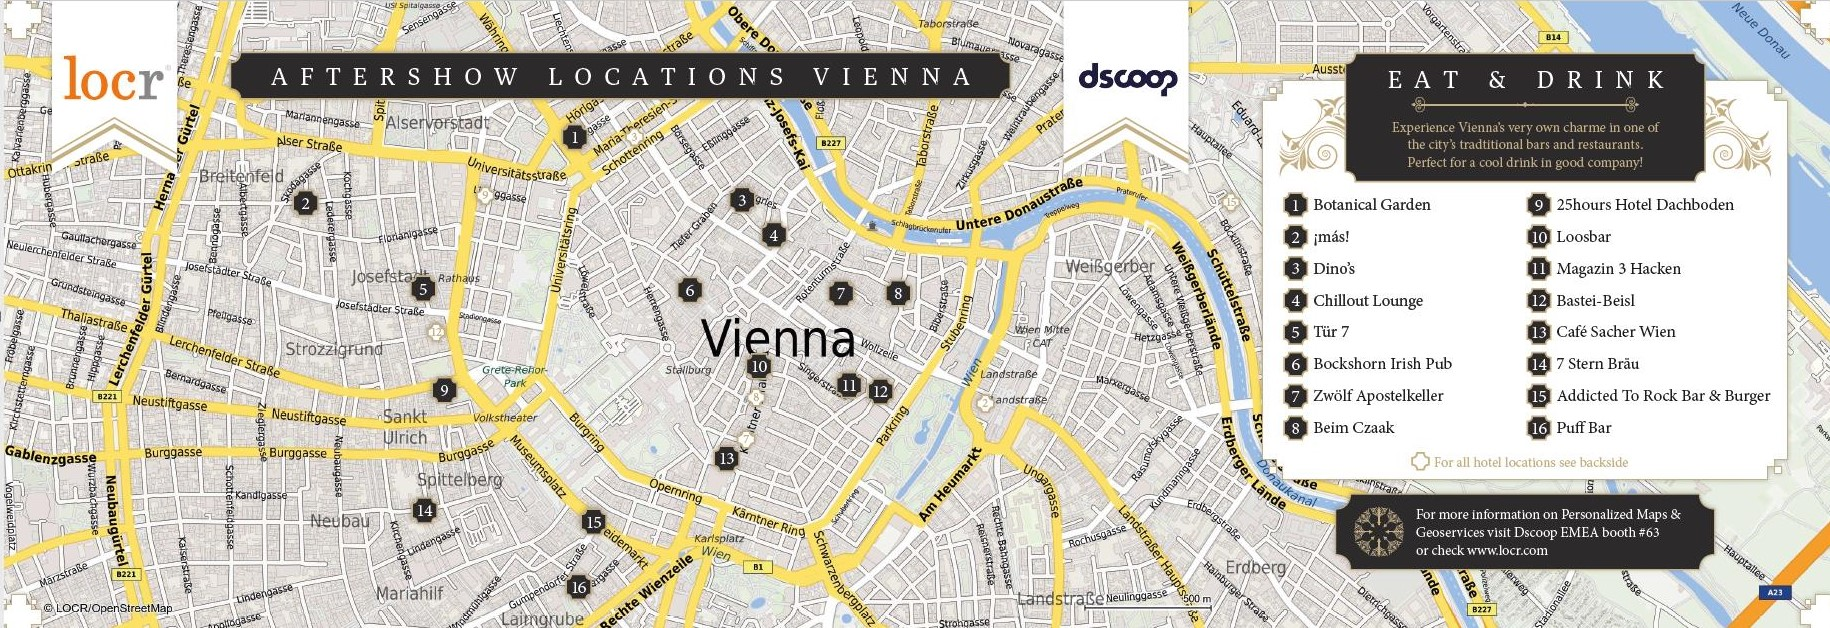 locr geoservices and maps dscoop emea vienna guide image